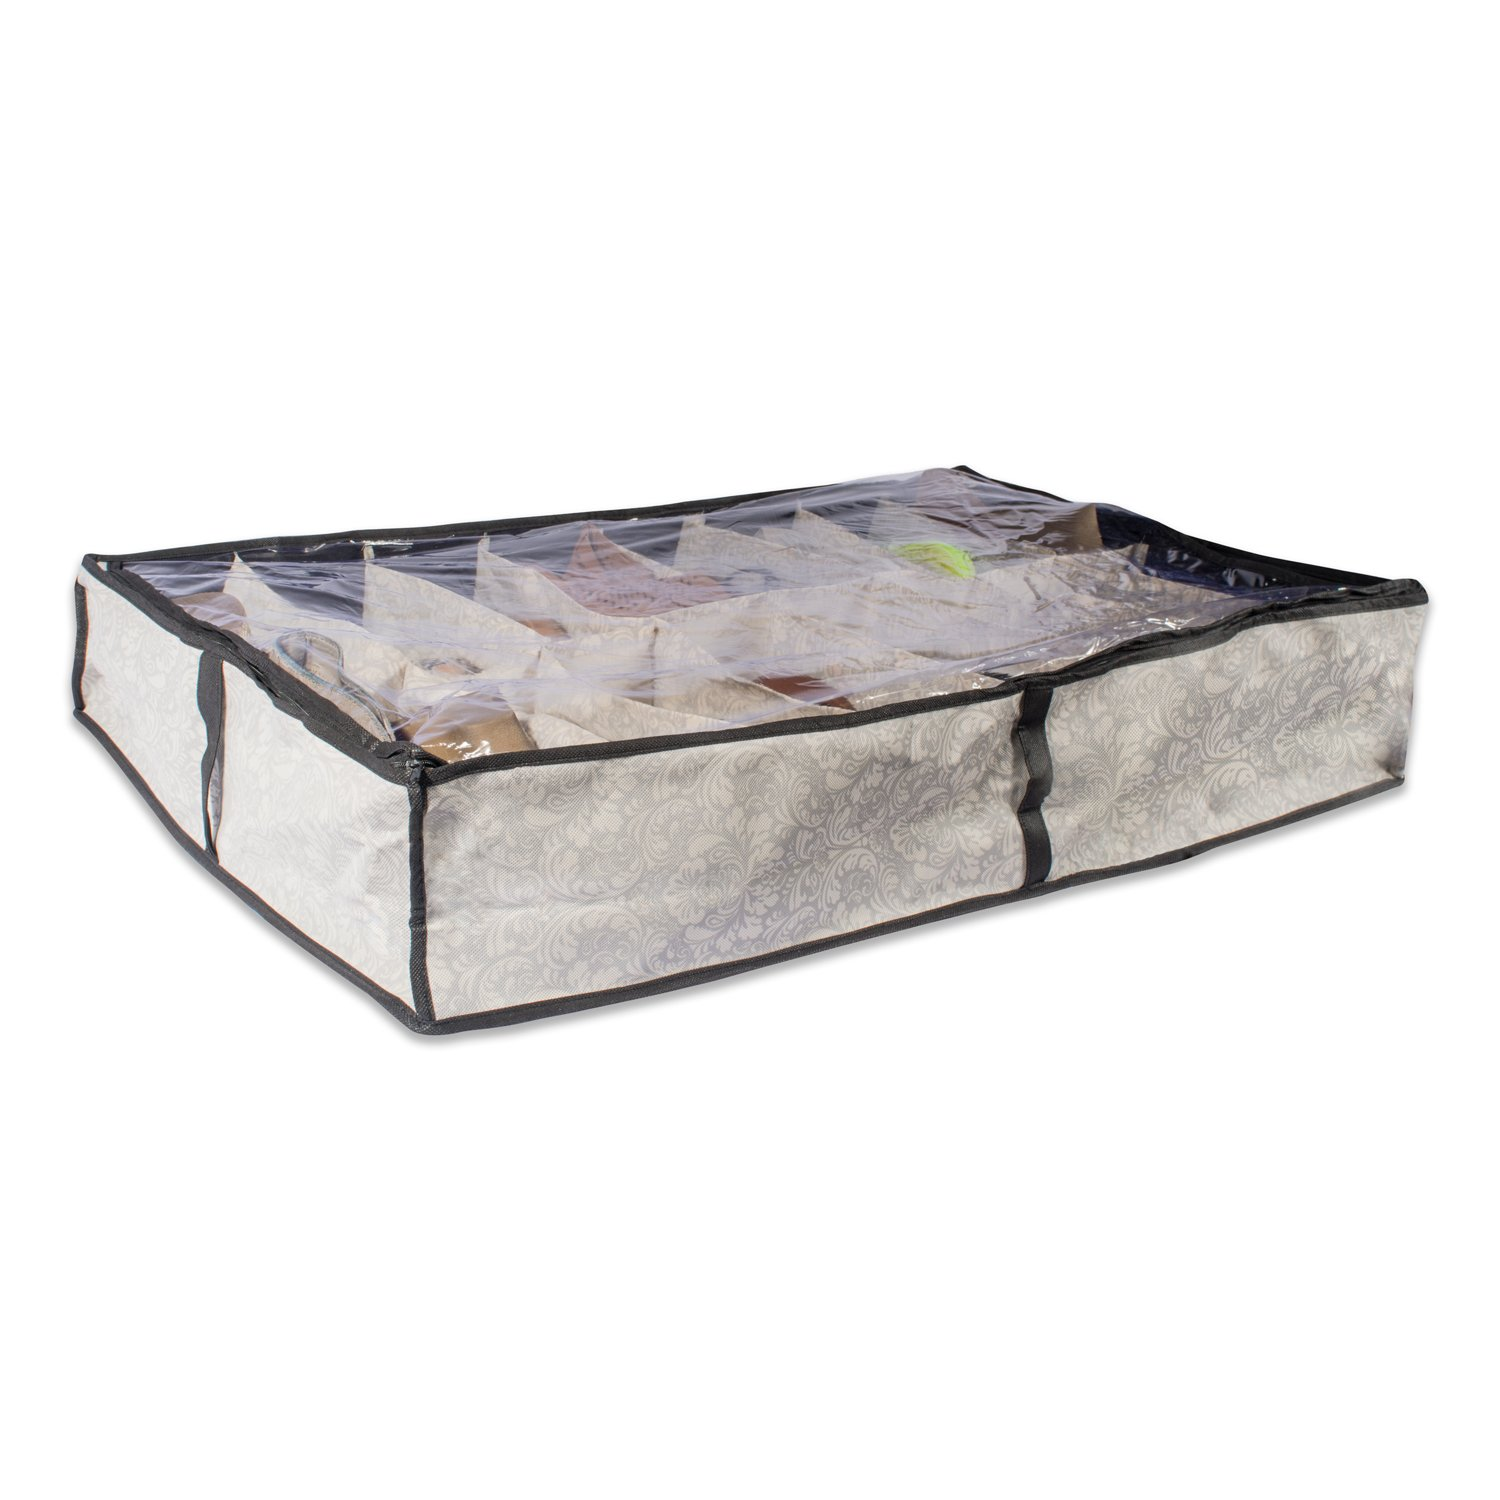 DII Breathable, Under the Bed Closet Soft Storage Bag Clear Viewing Window & Zipper Closure Shoes (Fits 16 Pairs - 37 x 23 x 6) Grey Damask